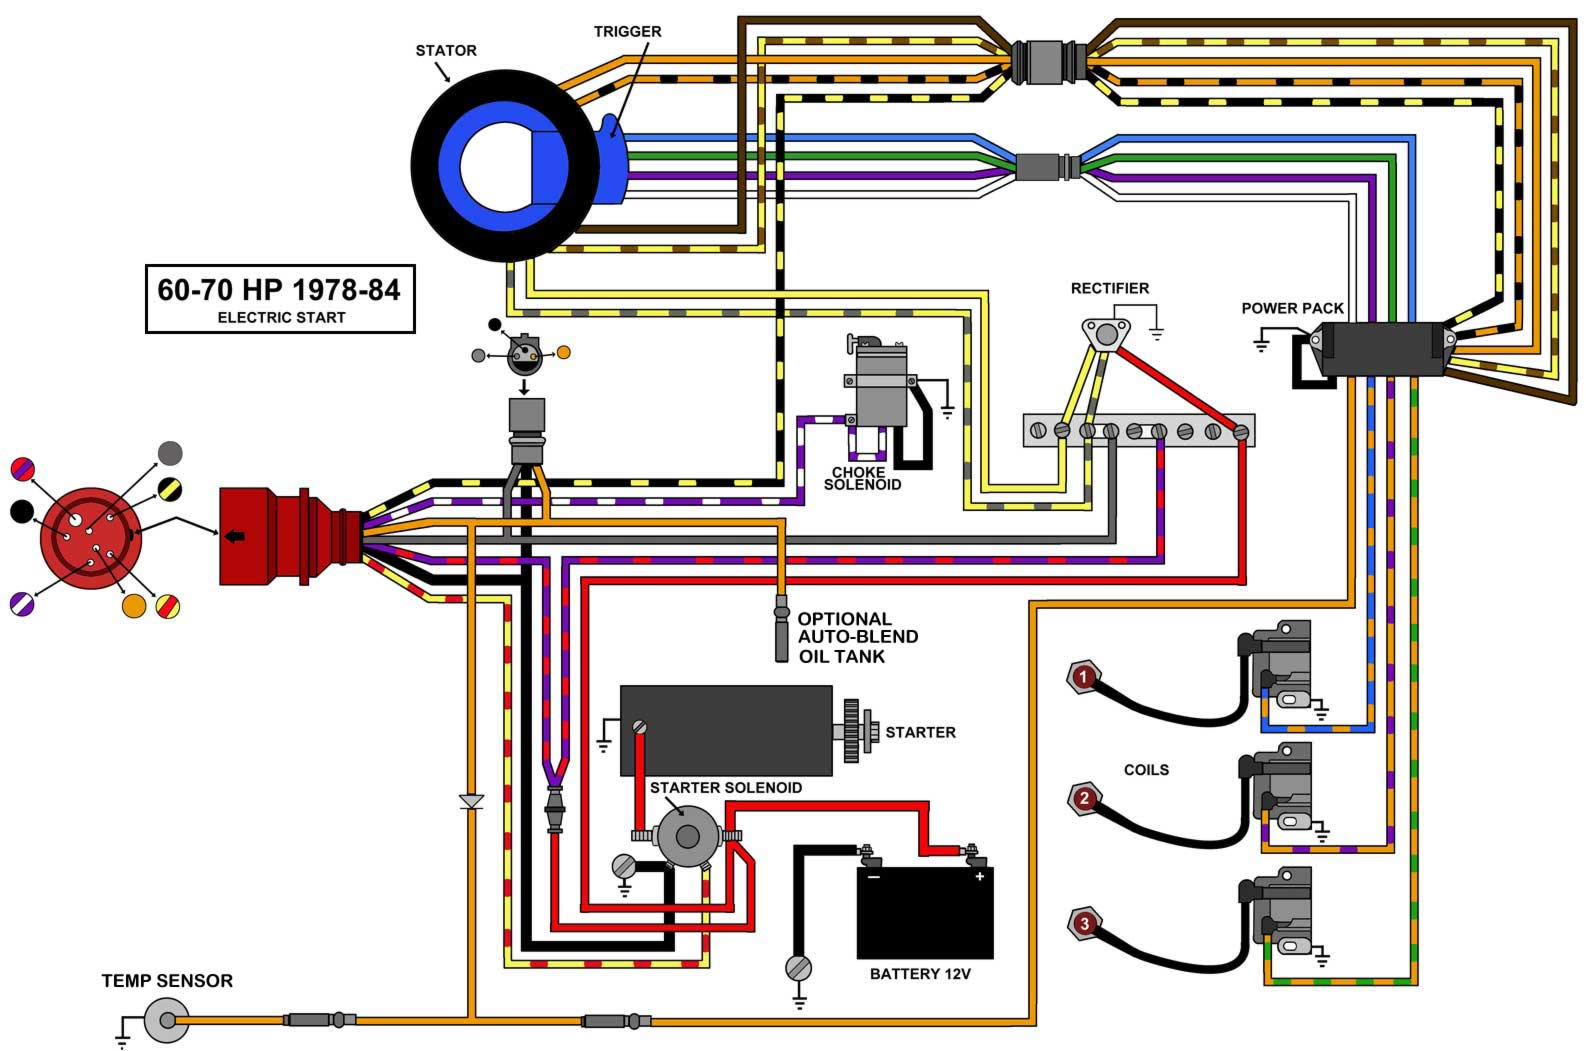 78 84_3 CYL_EL wiring tach from johnson controls page 1 iboats boating forums johnson ignition switch wiring diagram at bayanpartner.co